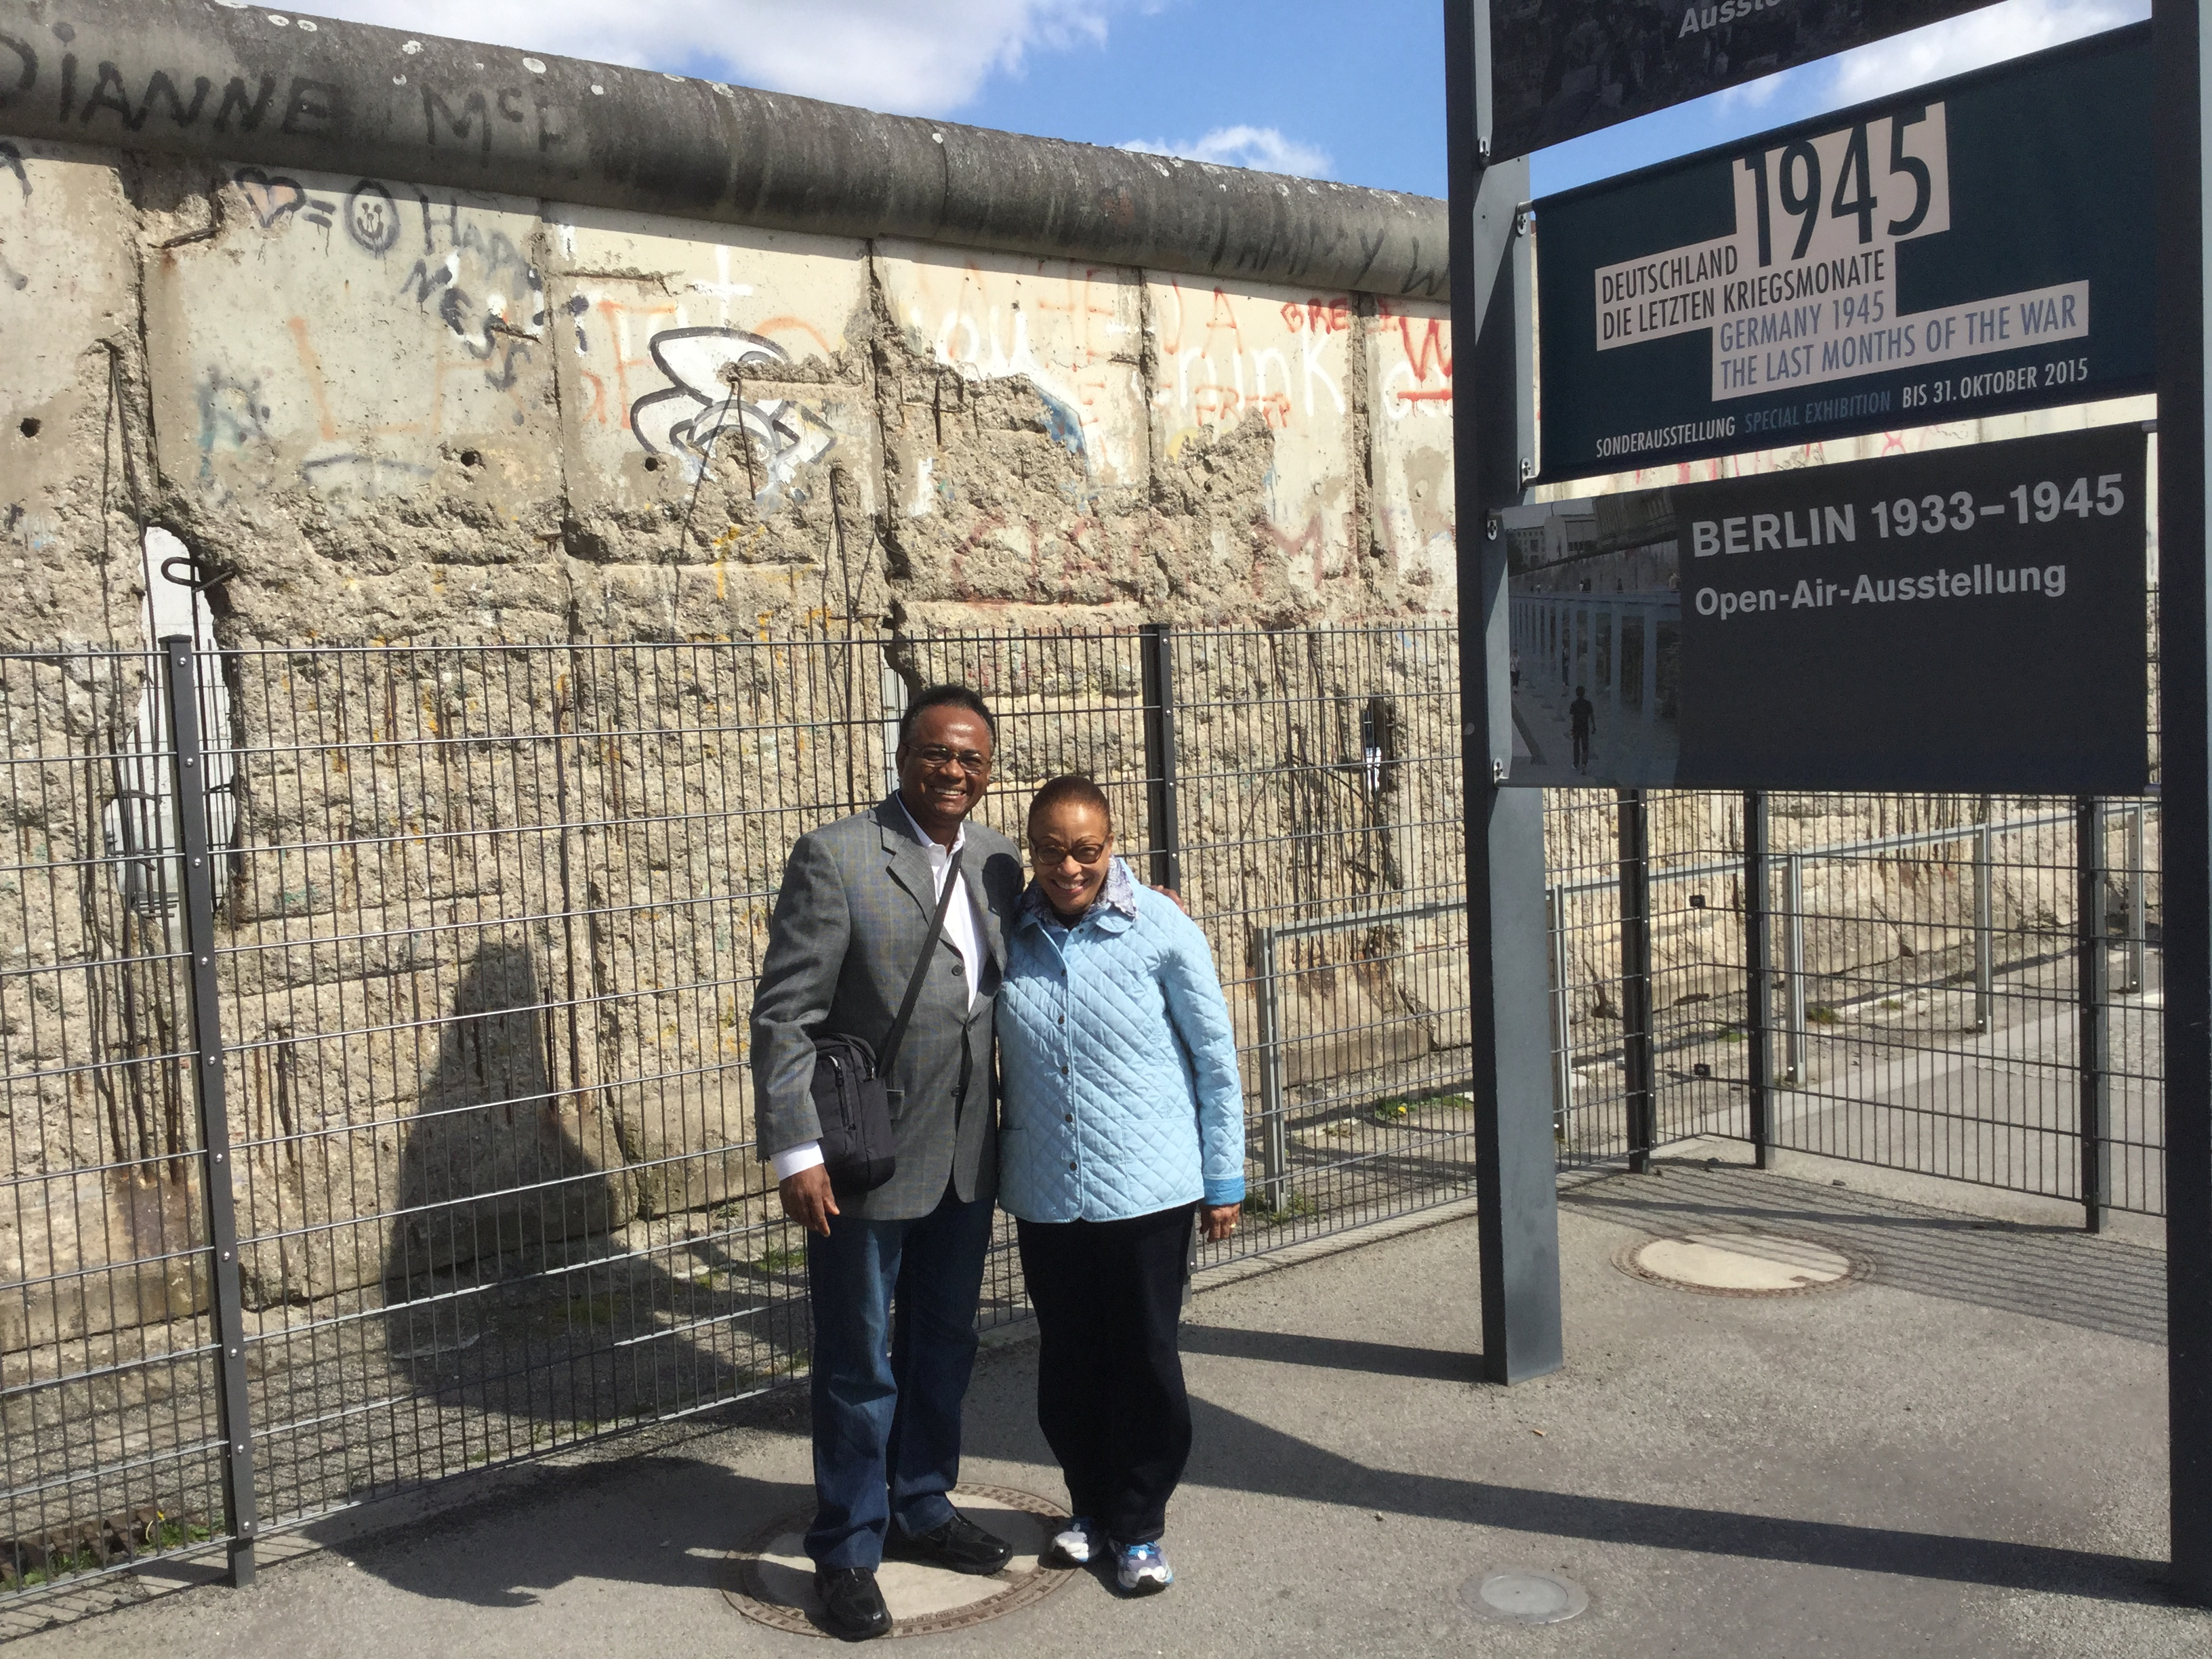 Bishop and Rose at the Berlin Wall